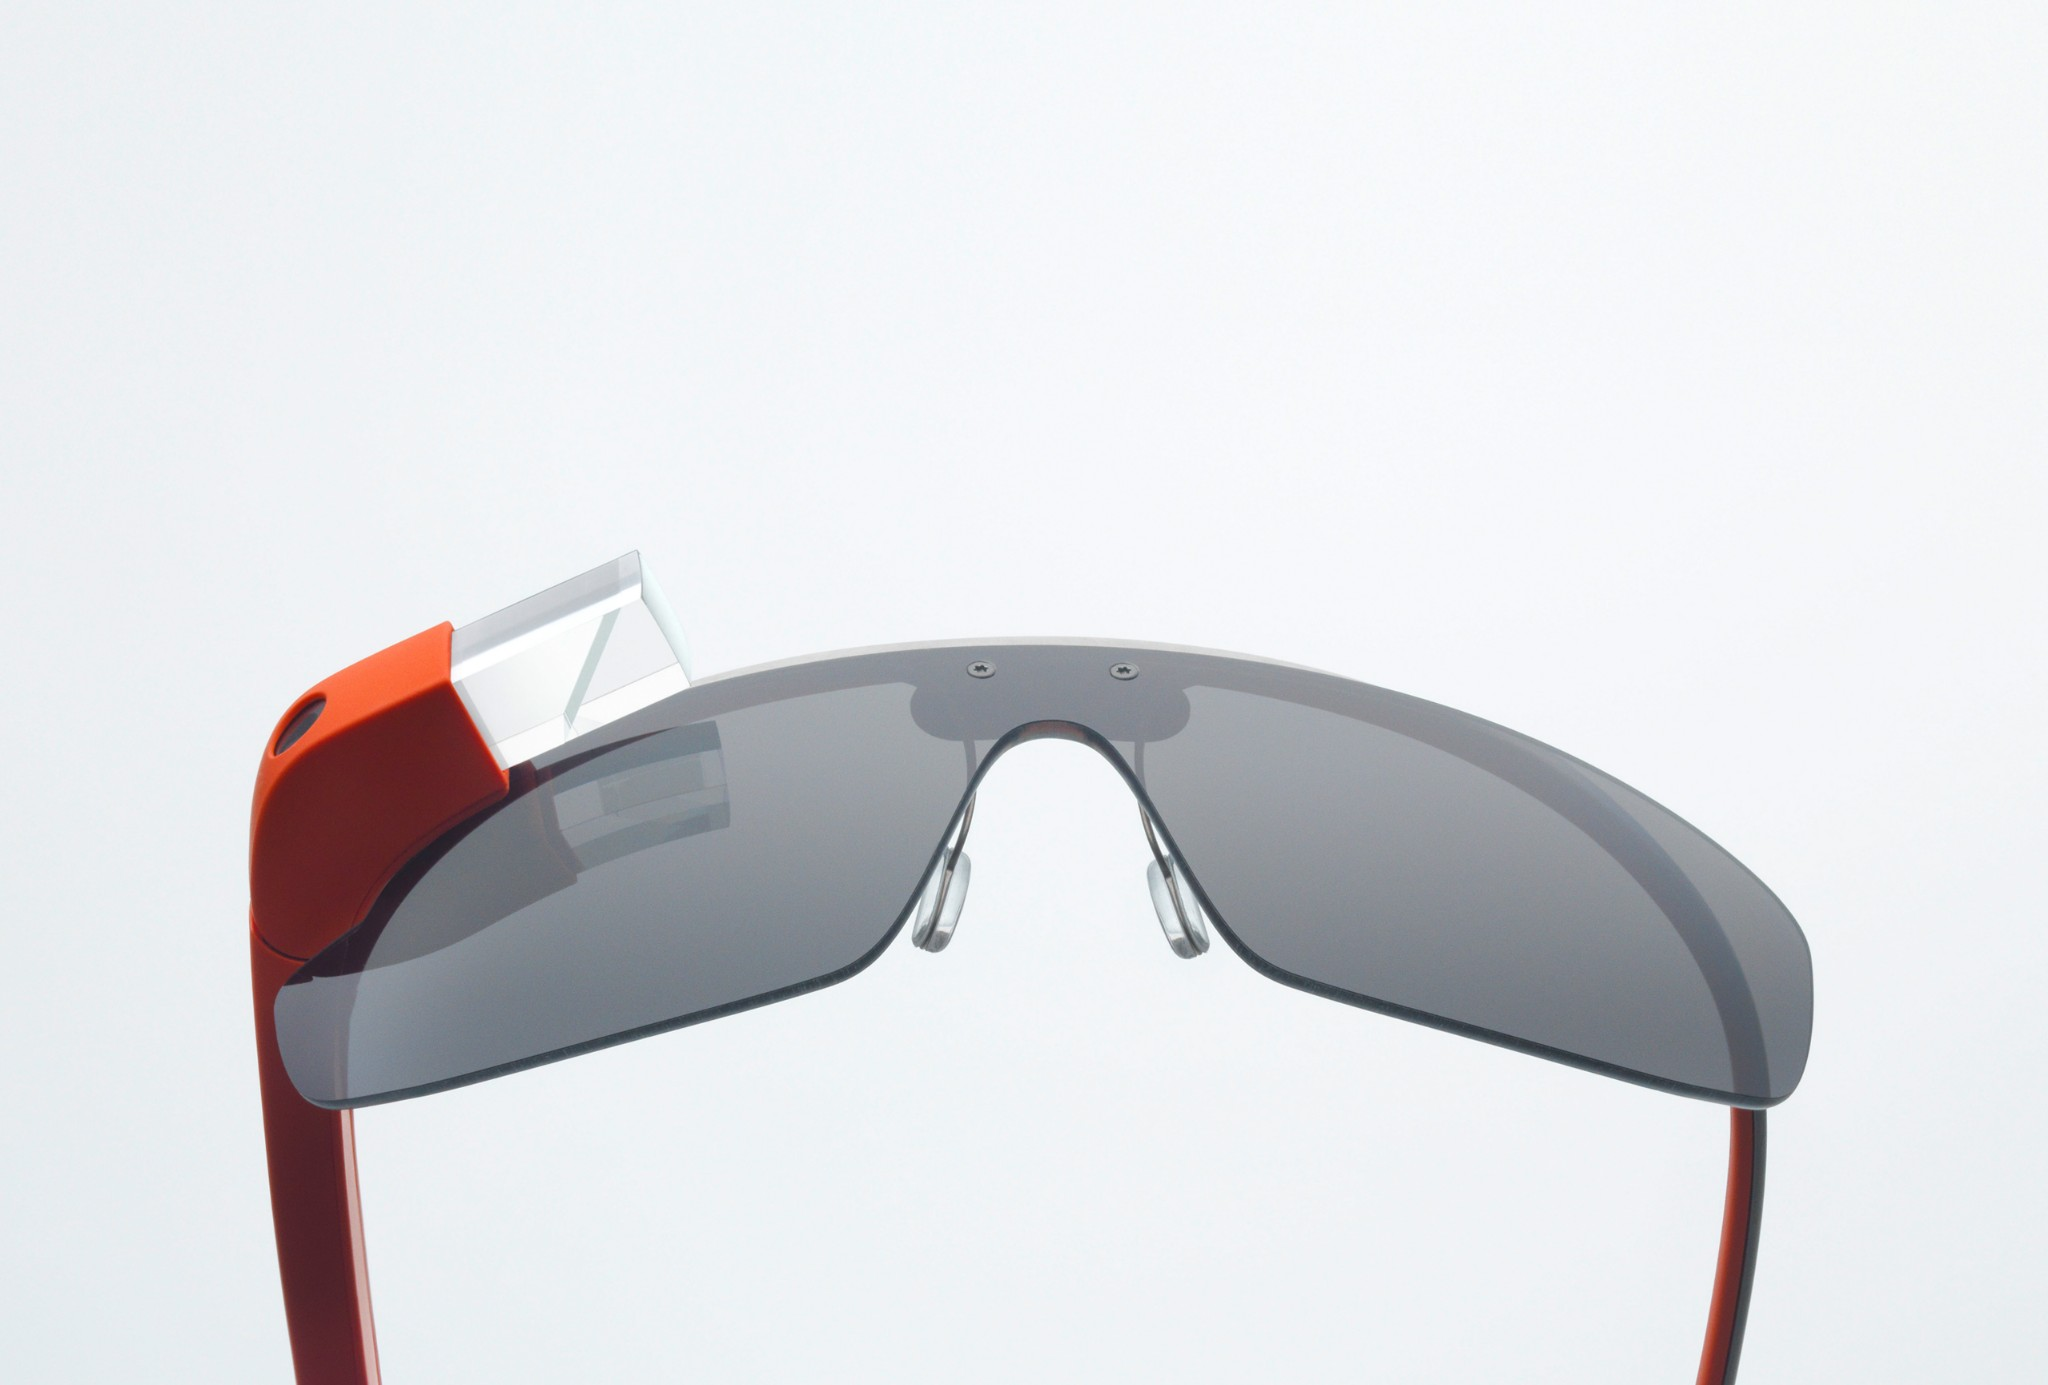 http://www.roadtovr.com/wp-content/uploads/2013/02/google-glass-sunglasses.jpg